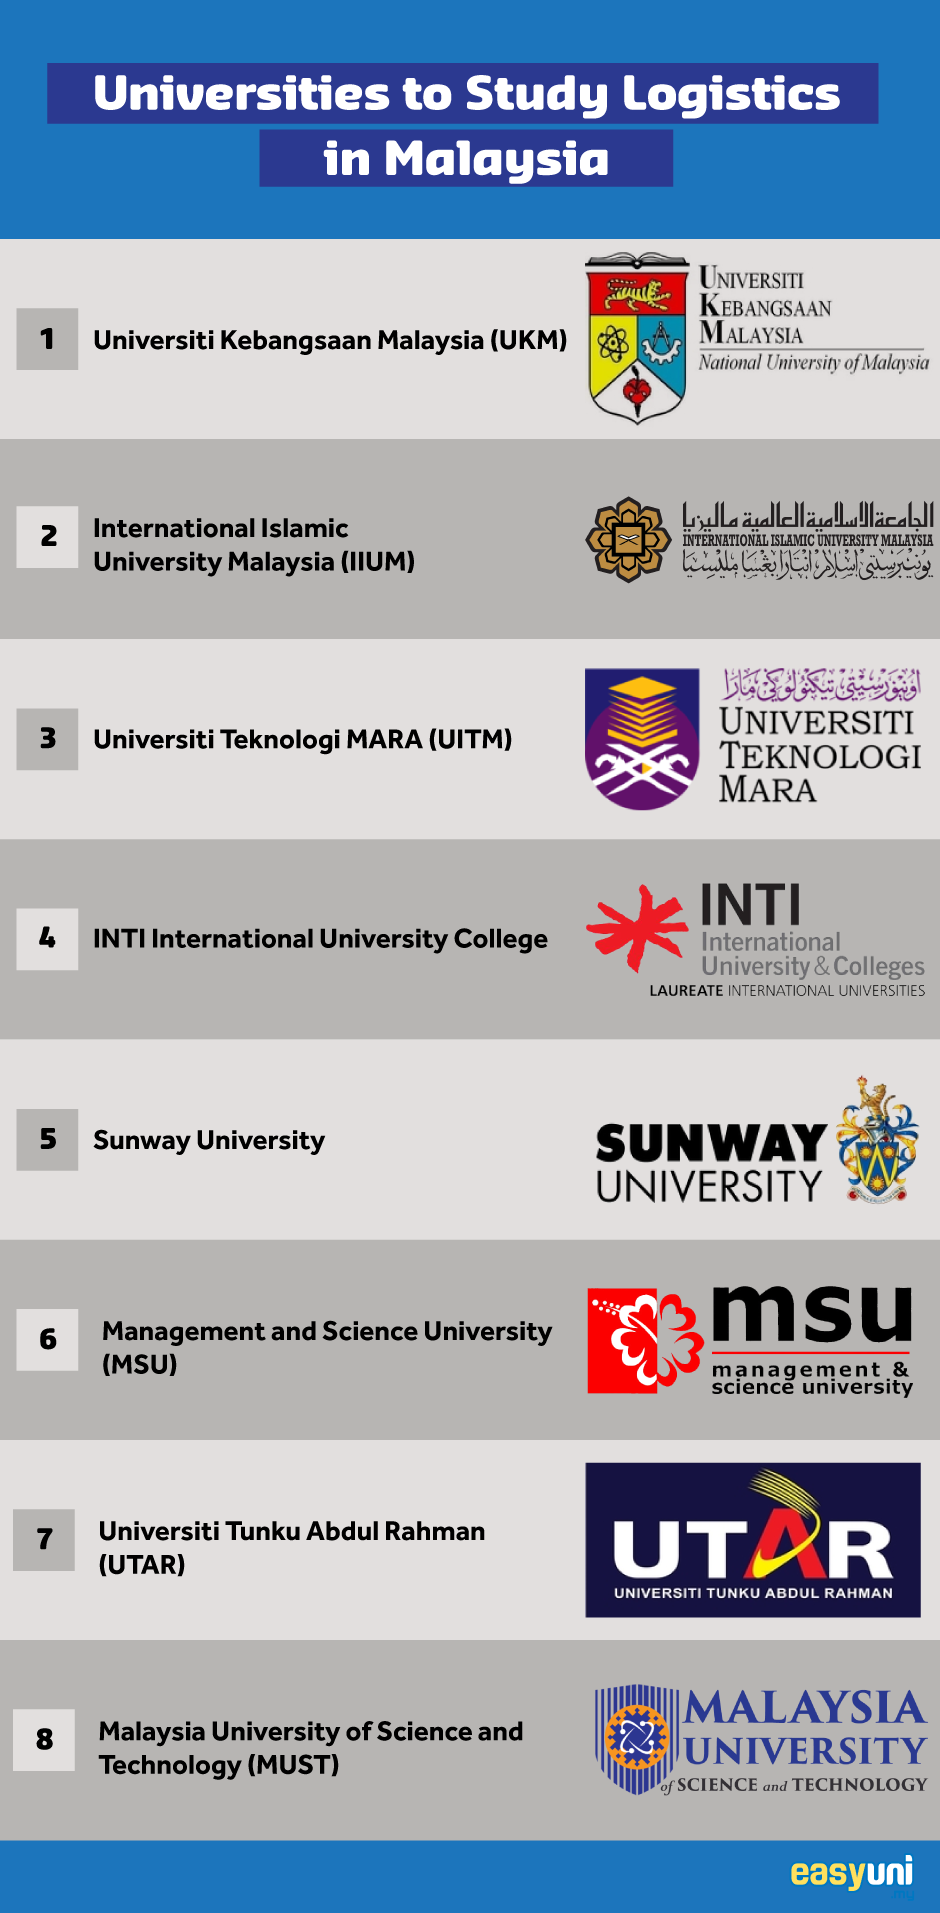 universities in Malaysia with supply chain courses